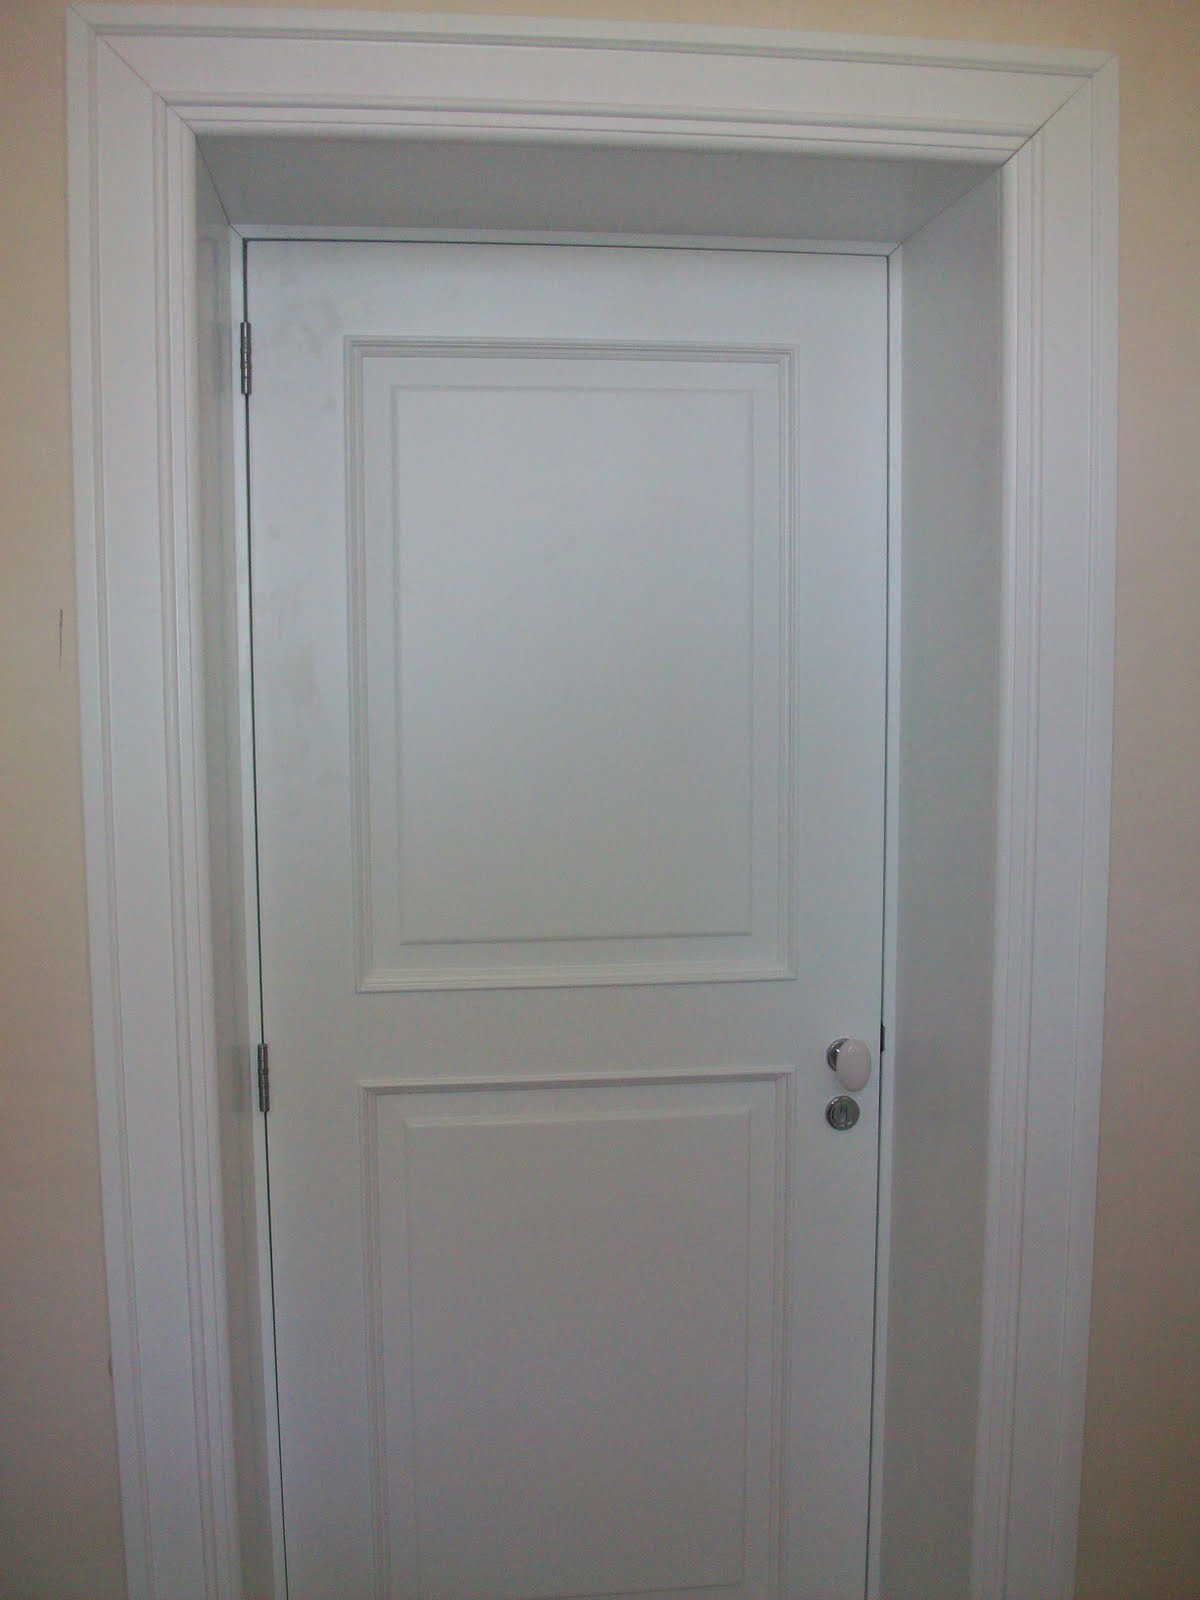 New bedroom door